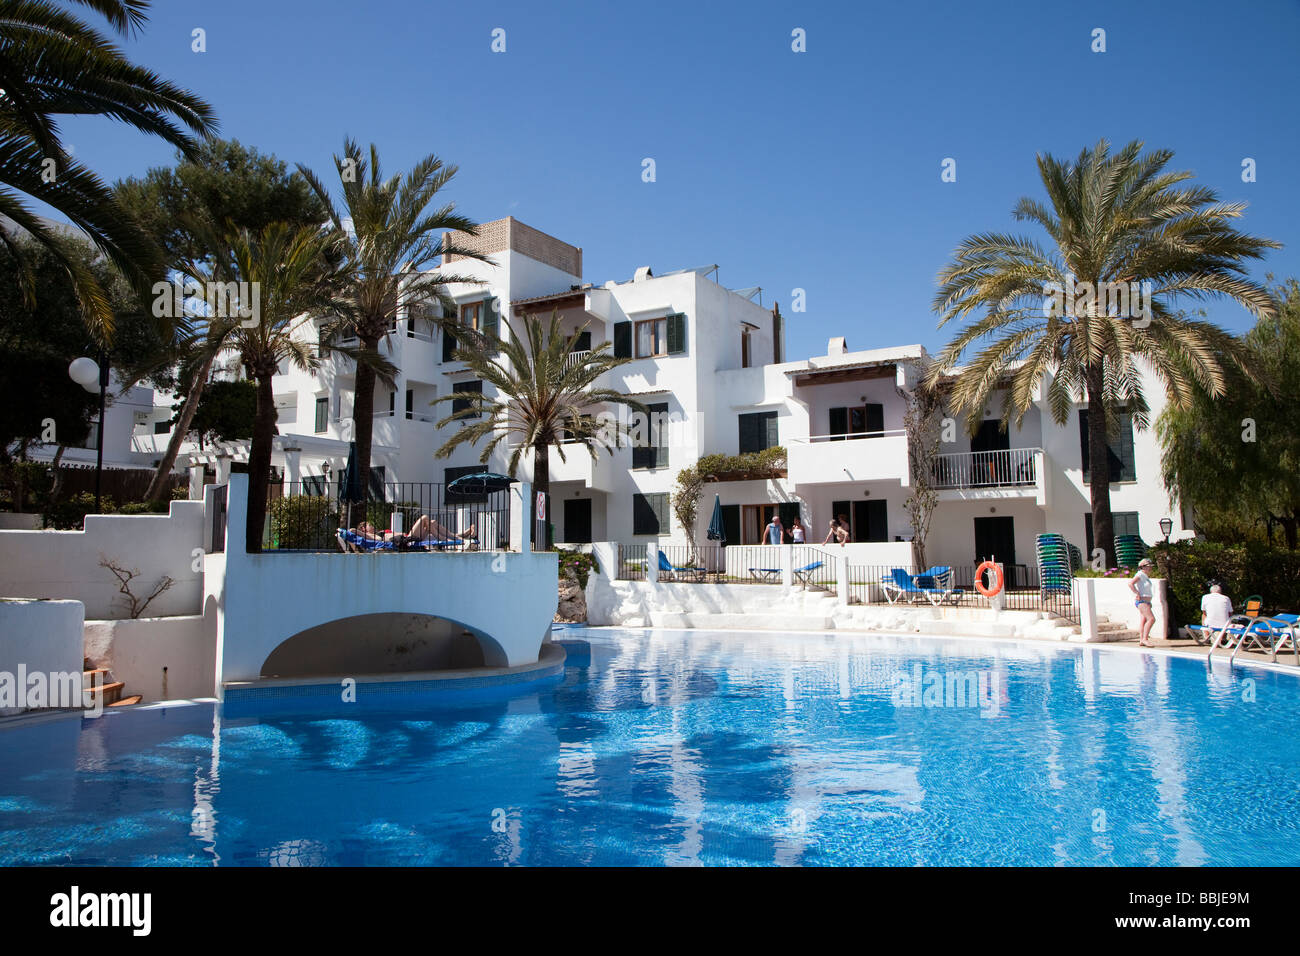 Moderne Hotel-Accommodatiion und Pool im Urlaub Resort Cala d ' or Mallorca Spanien Stockbild